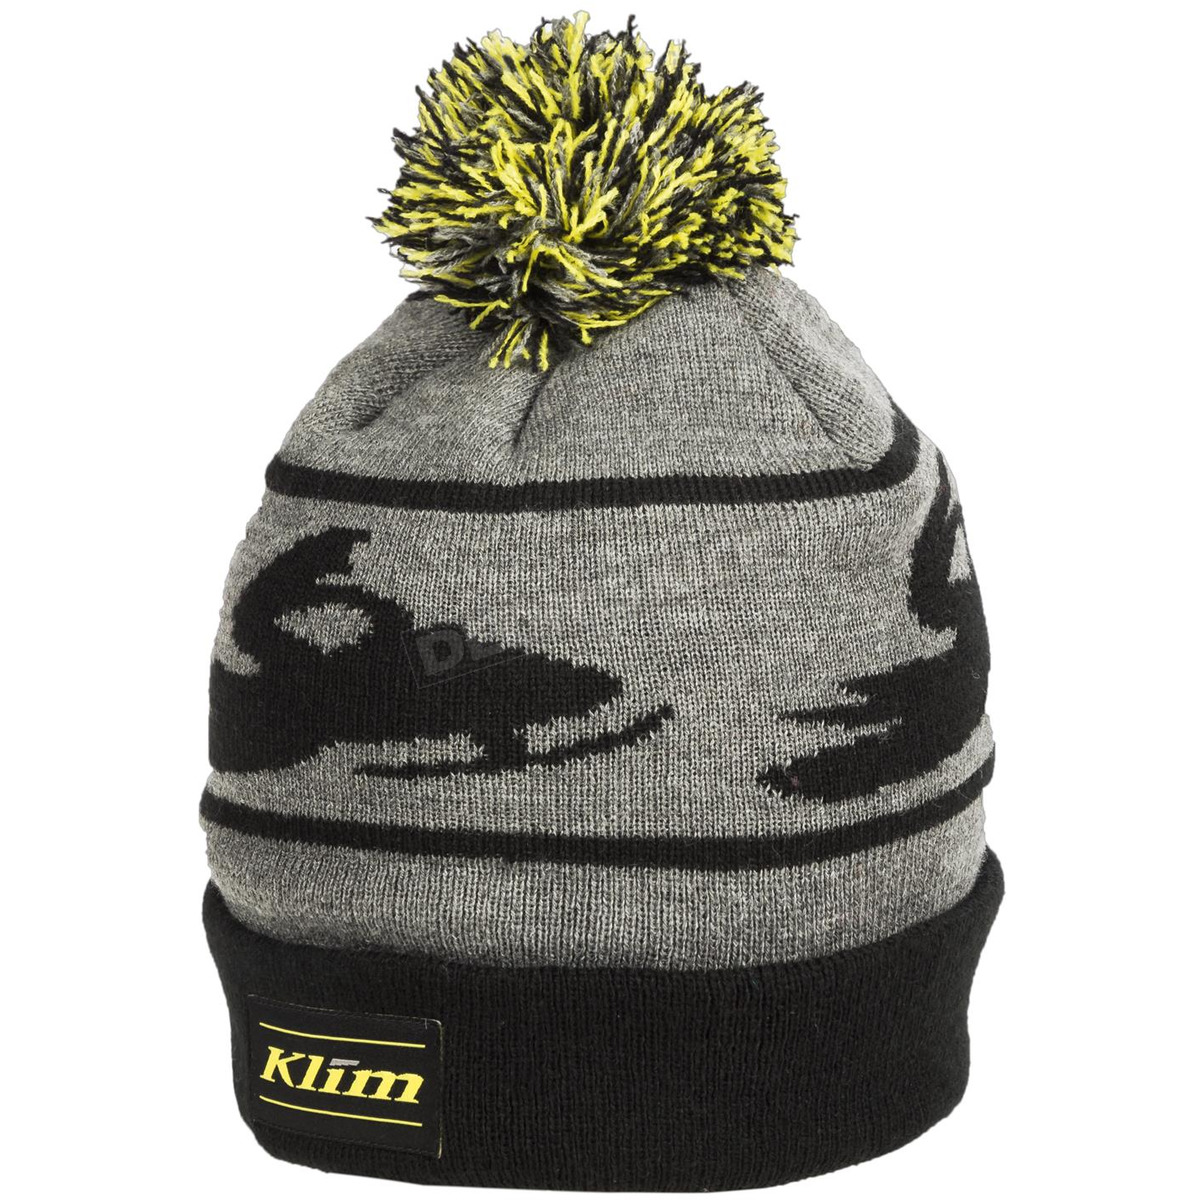 8312a4eb6d8057 Klim Black/Gray Bomber Beanie - 6028-002-000-000 Dirt Bike ...